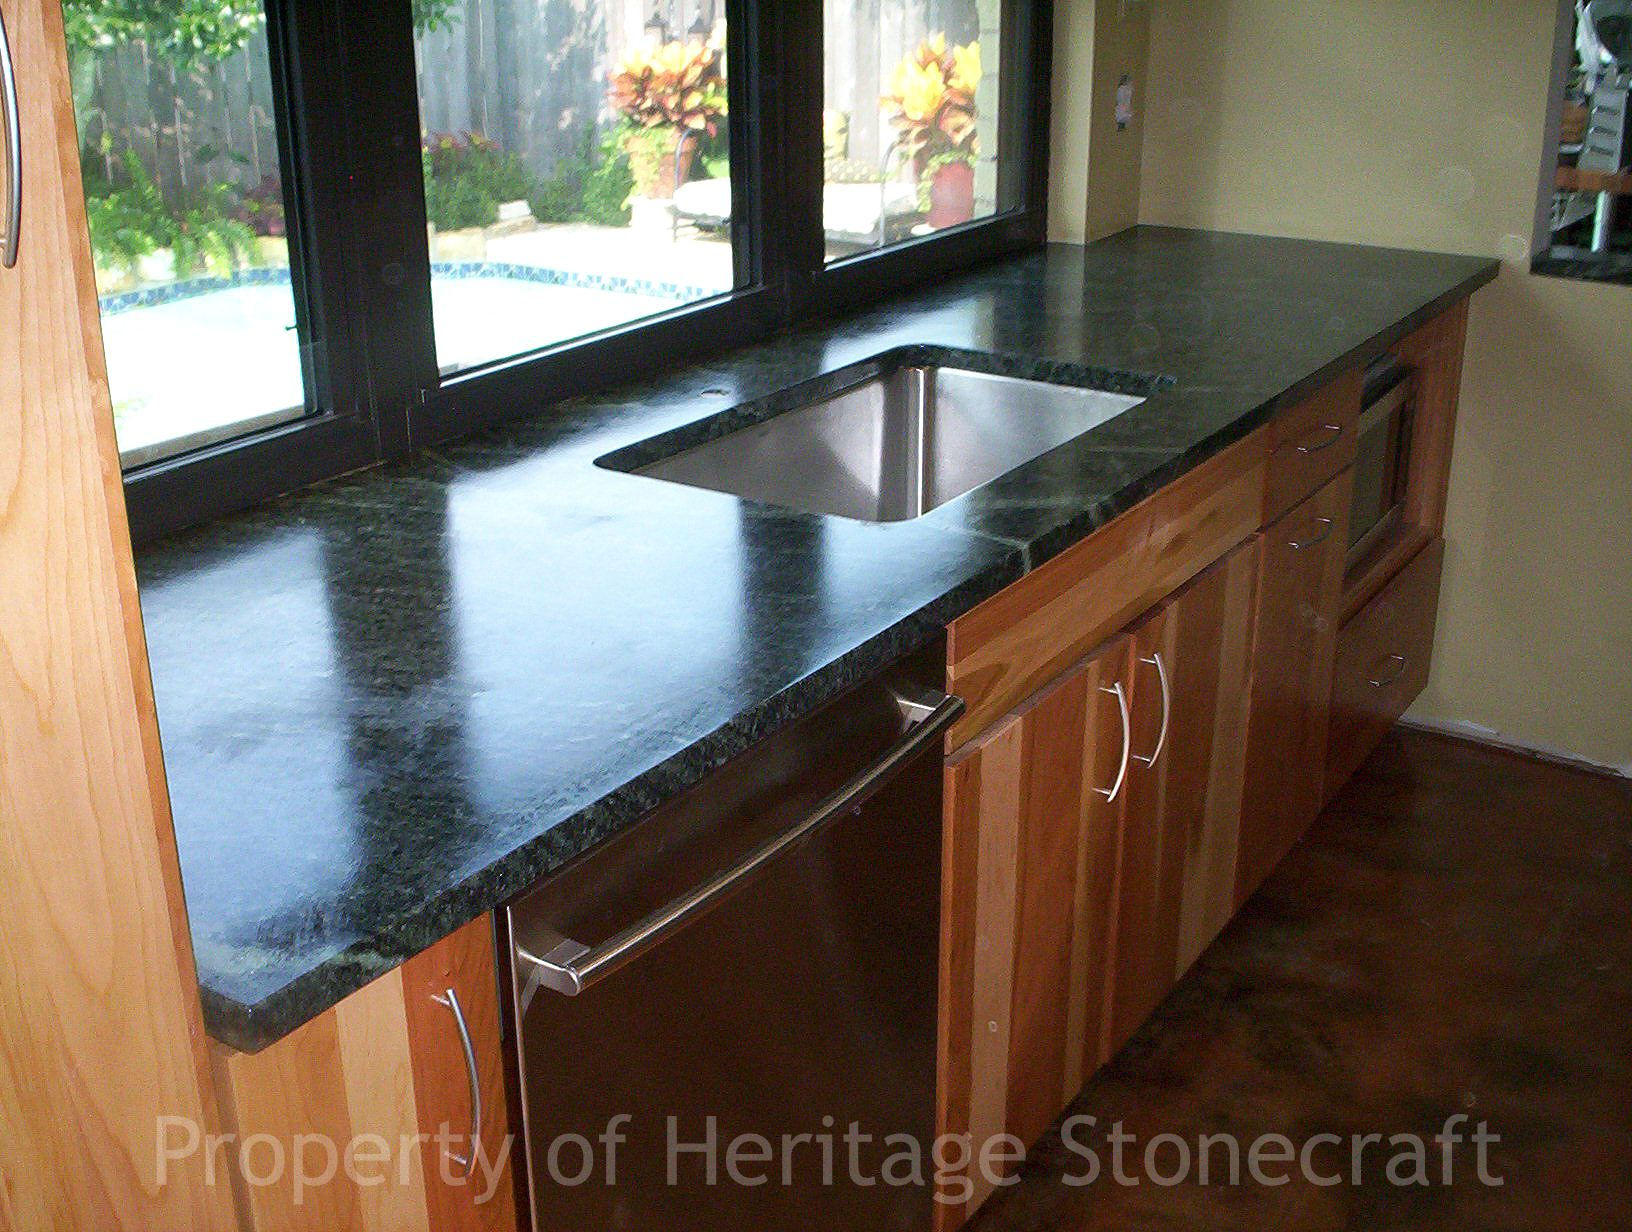 Soapstone countertops. | Kitchens | Pinterest | Soapstone ... on granite black countertop, tile black countertop, stainless steel sink black countertop, maple cabinets black backsplash, kitchen black countertop, black appliances black countertop, island black countertop, maple cabinets black island,